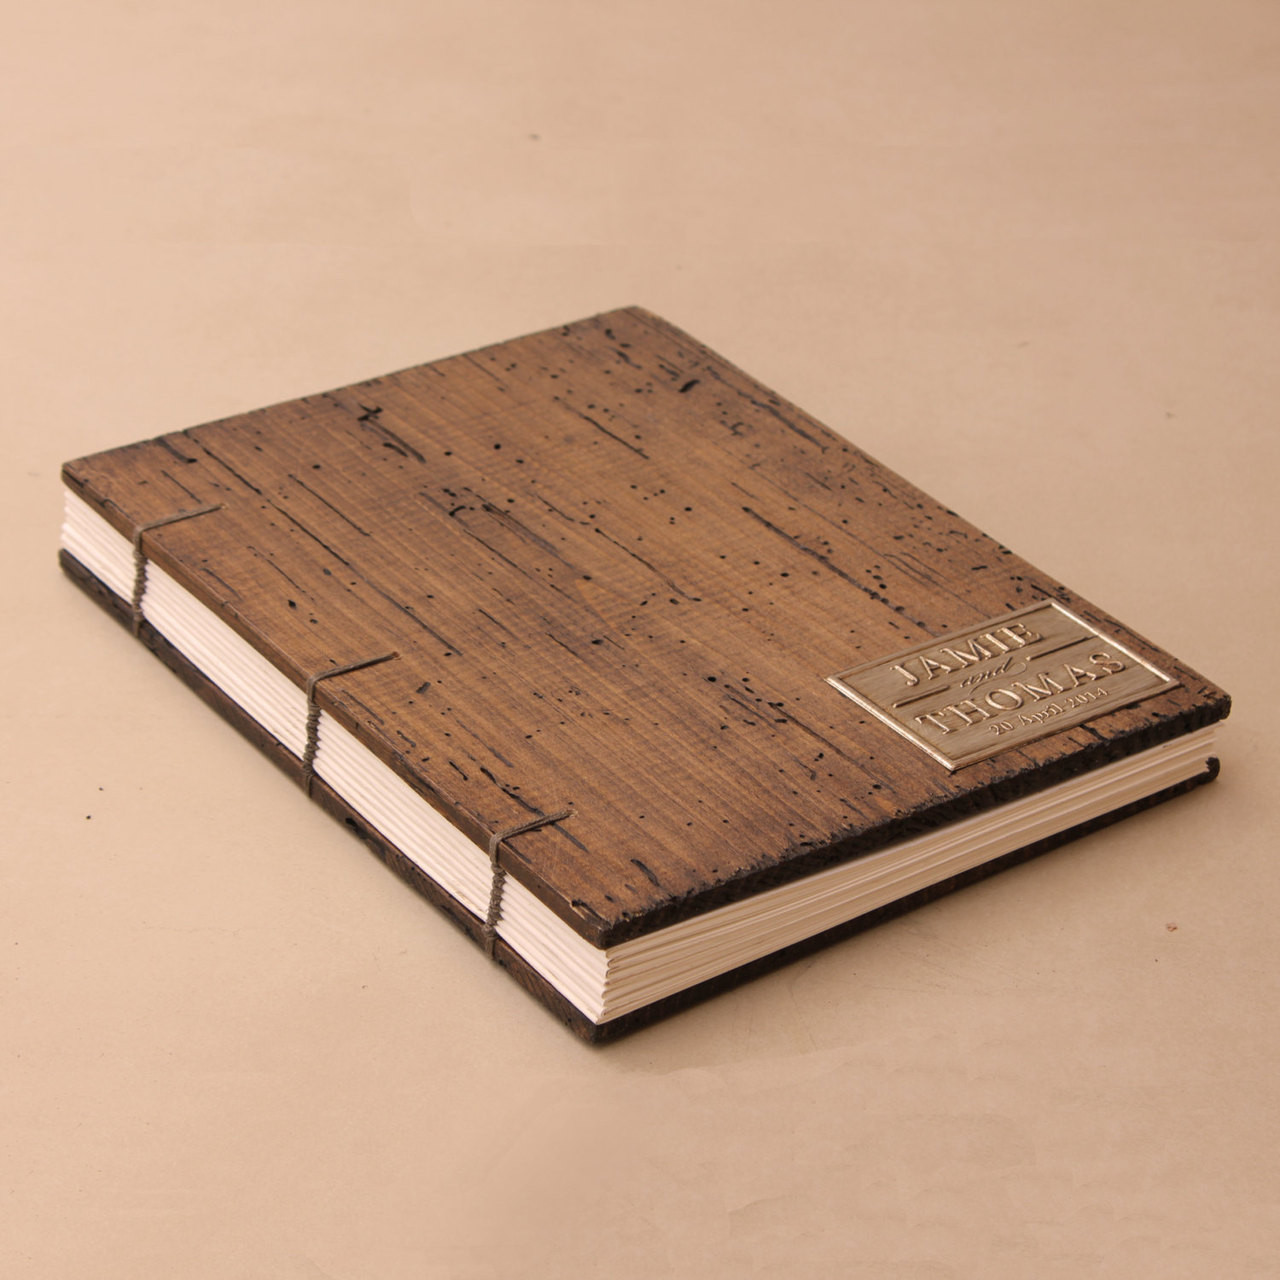 Rustic Wedding Guest Book Coptic Binding Truly Unique Personalized With Your Initials Or Names